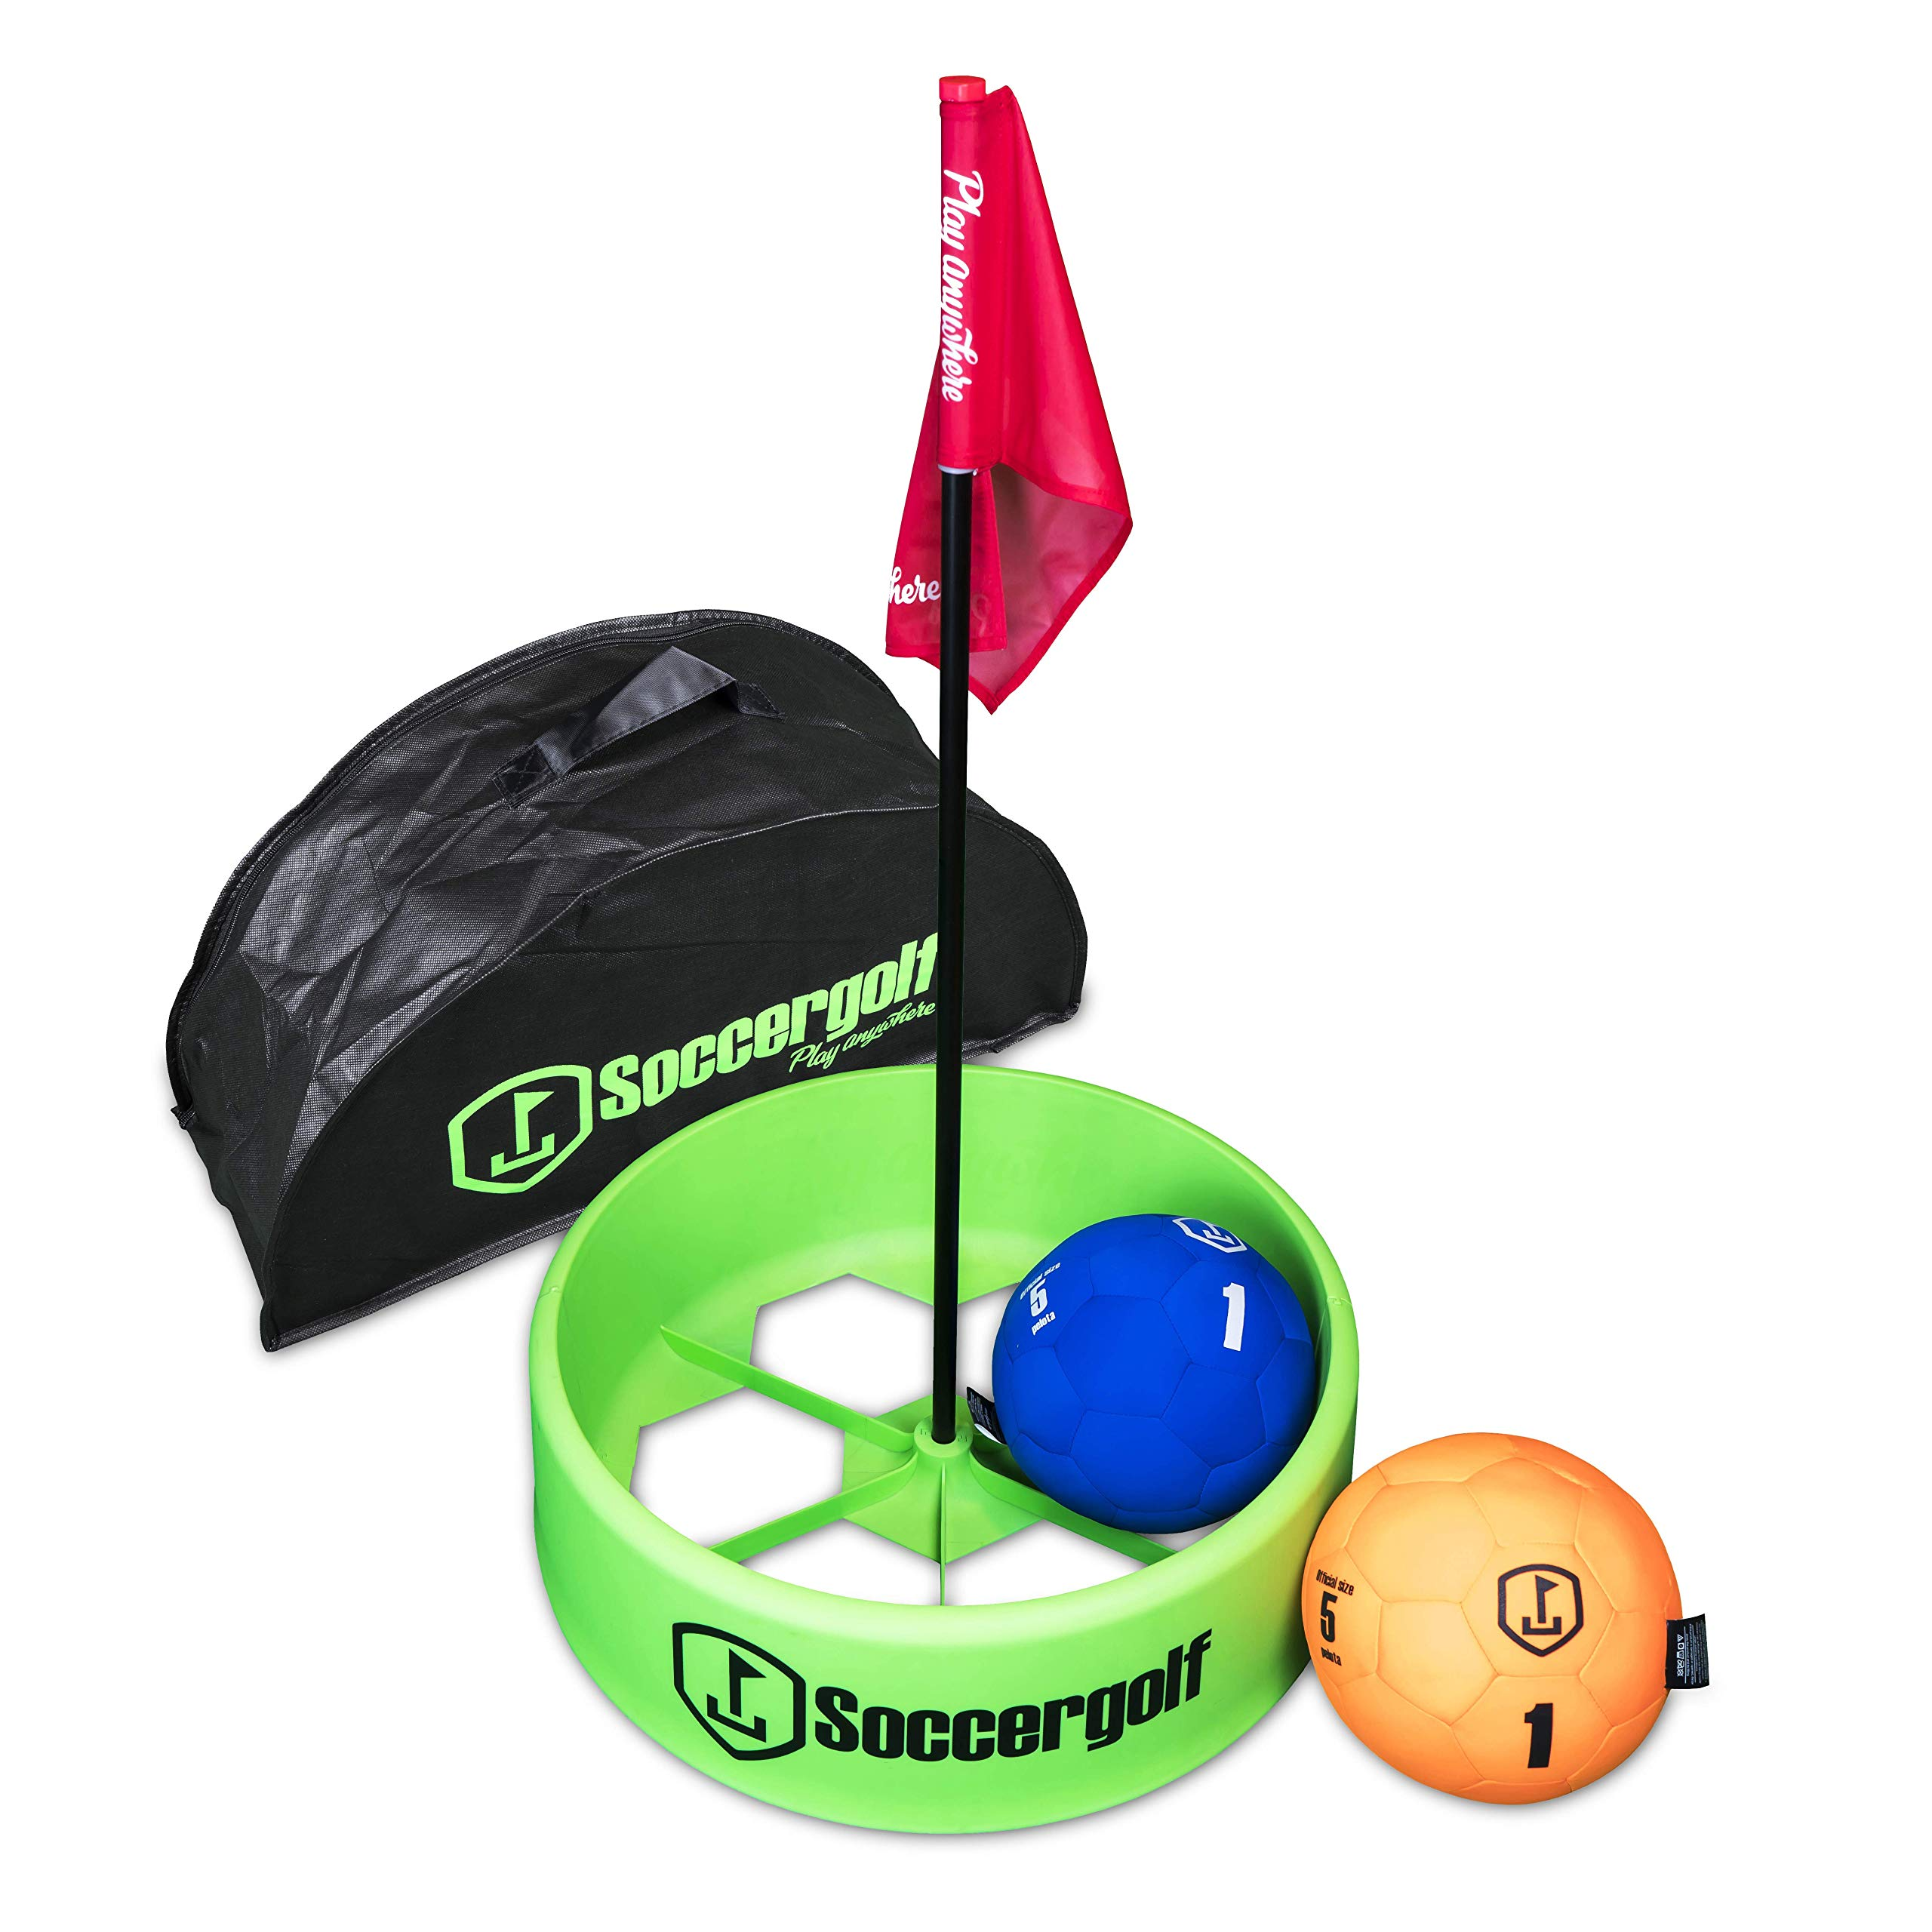 soccergolf - The Best New Game That Won't Break Your House